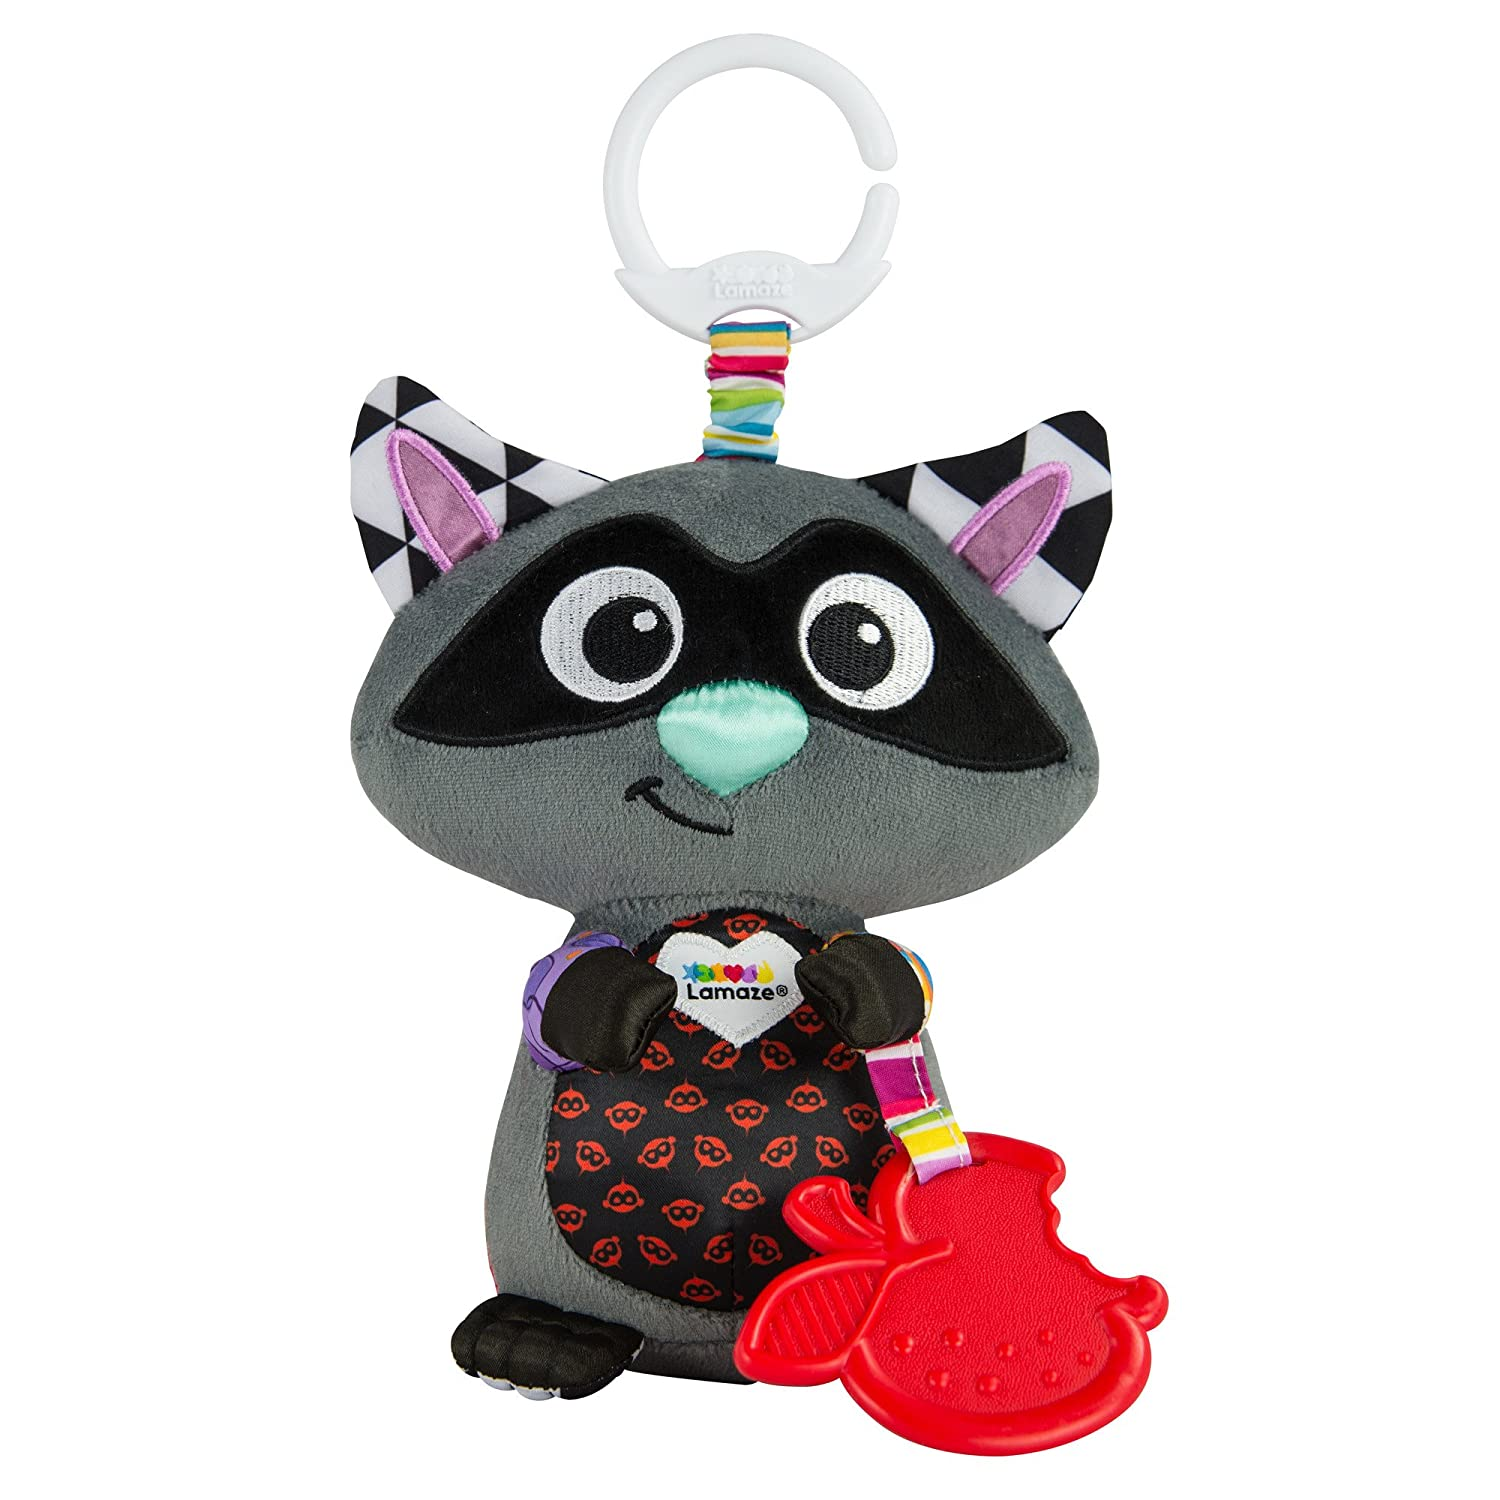 Lamaze Disney Incredibles Clip and Go, Edna Tomy UK Ltd First Order Account L27253